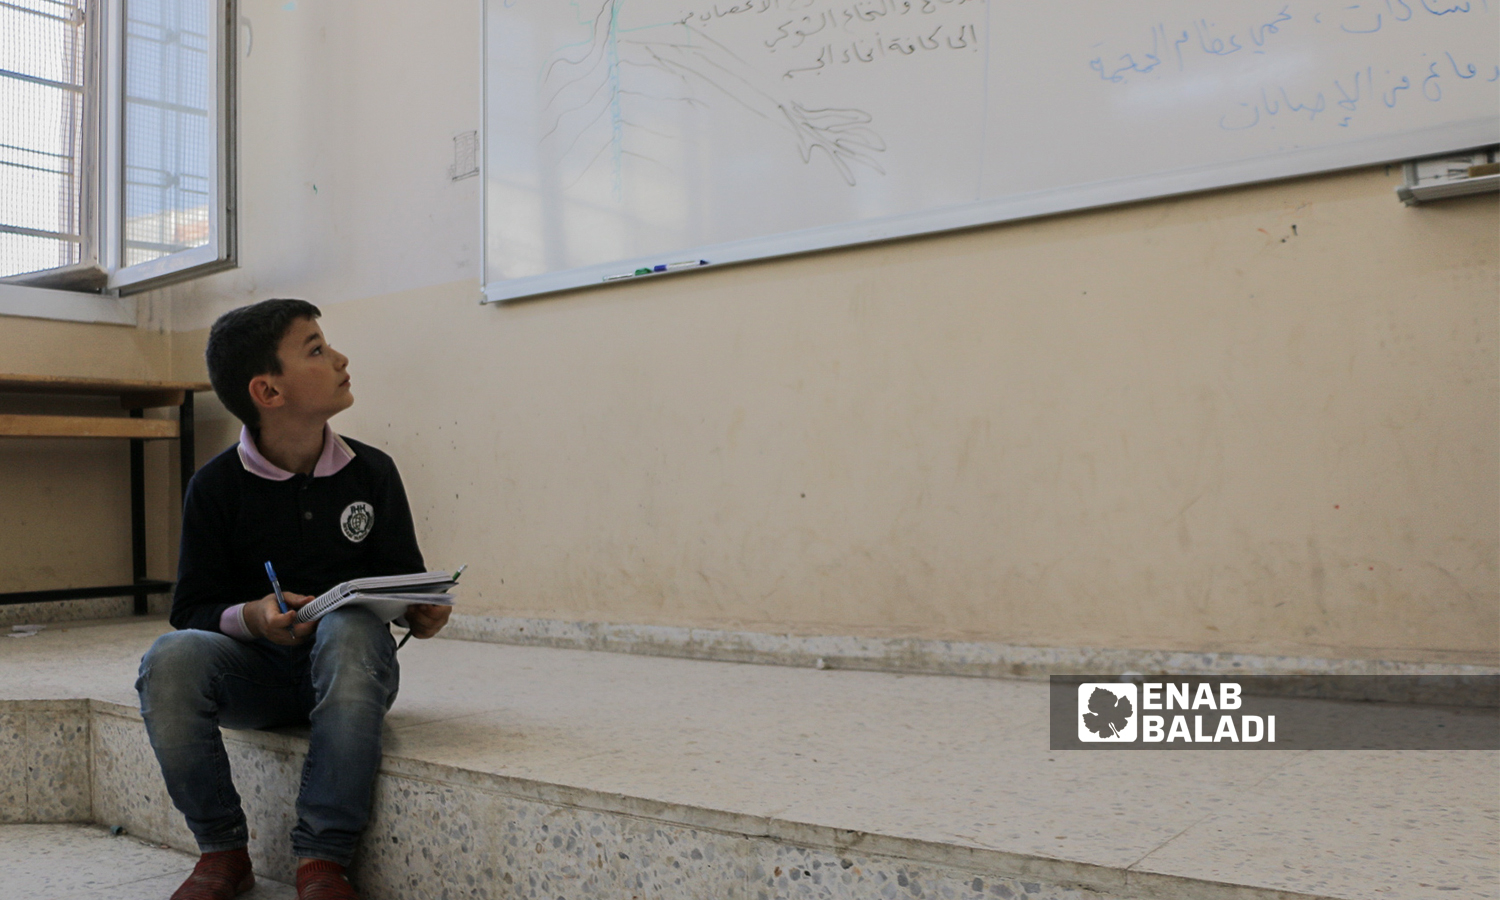 A primary schooler is sitting on the ground next to the whiteboard writing down his notes in a classroom in Azaz- 22 September 2021 (Enab Baladi- Walid Othman)